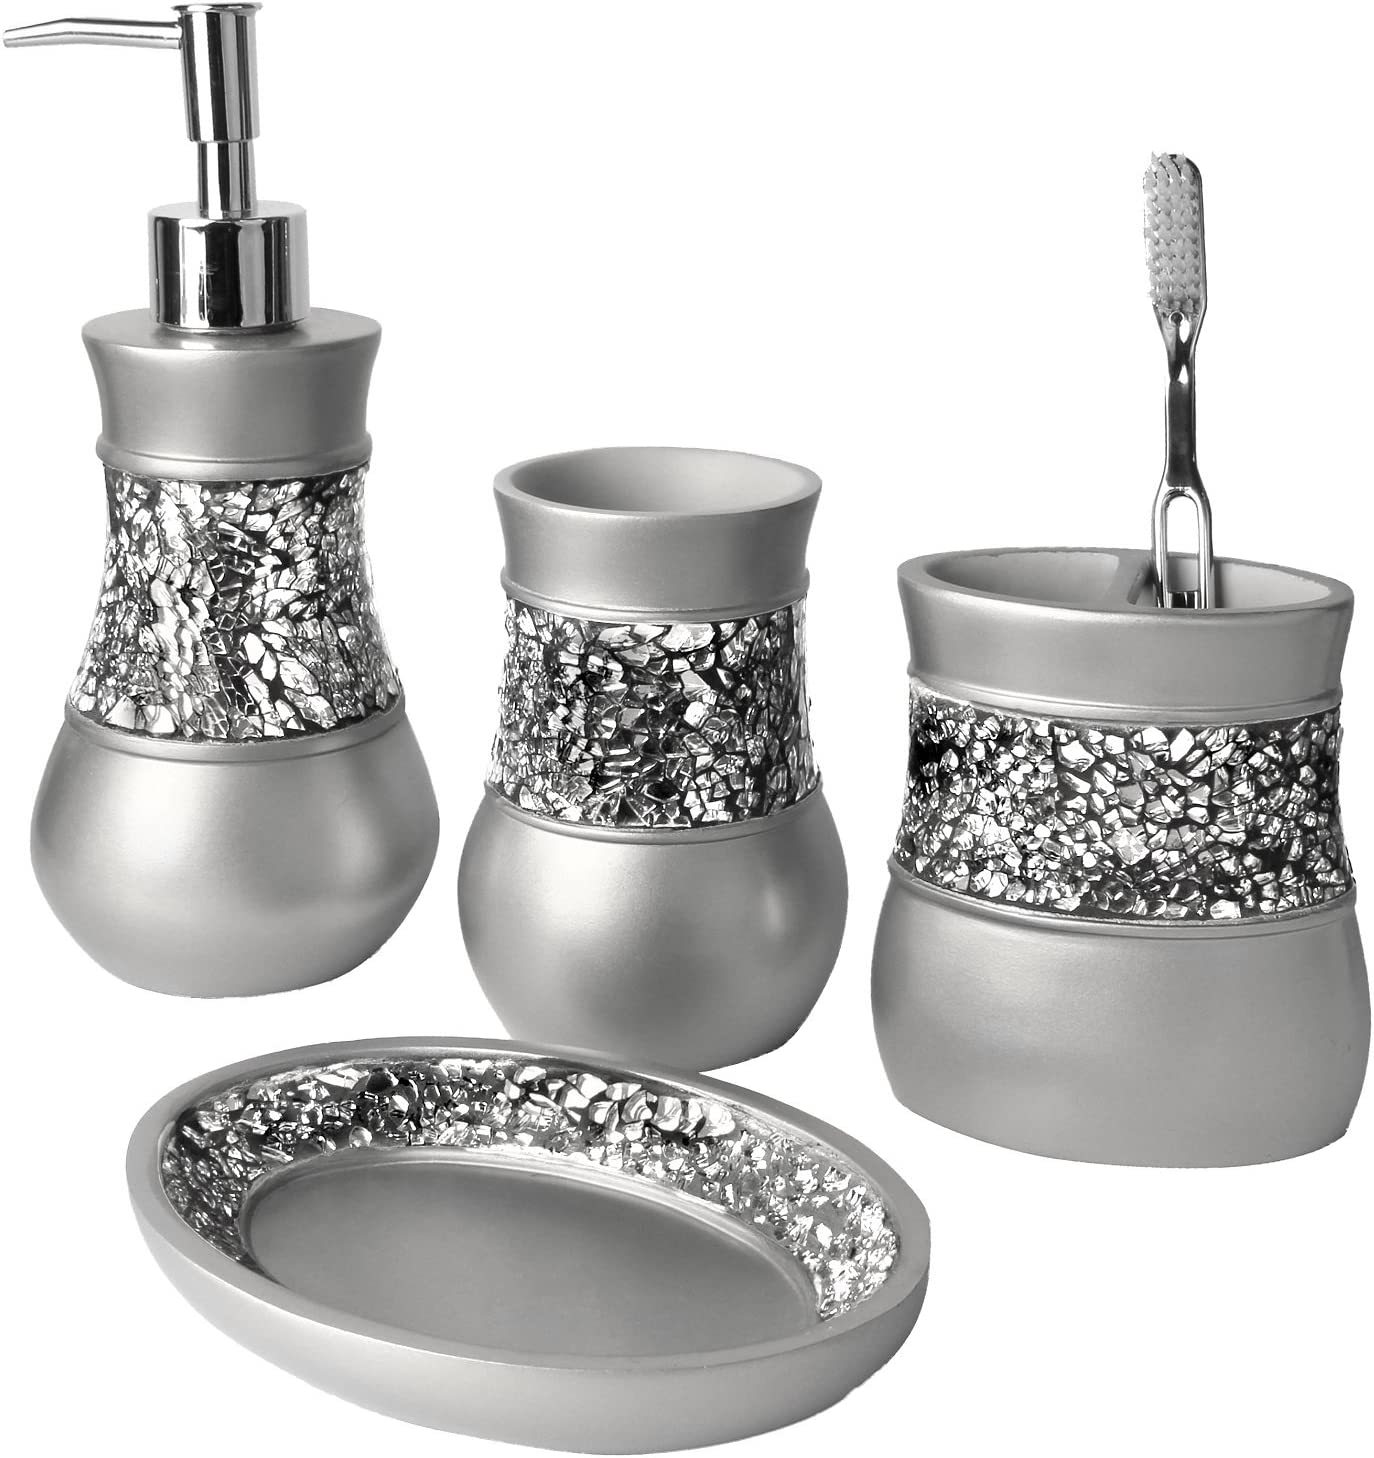 Amazon Com Creative Scents Gray Bathroom Accessories Set 4 Piece Bathroom Decor Set For Home Bath Restroom Set Features Soap Dispenser Toothbrush Holder Tumbler Soap Dish Bling Silver Mosaic Glass Home